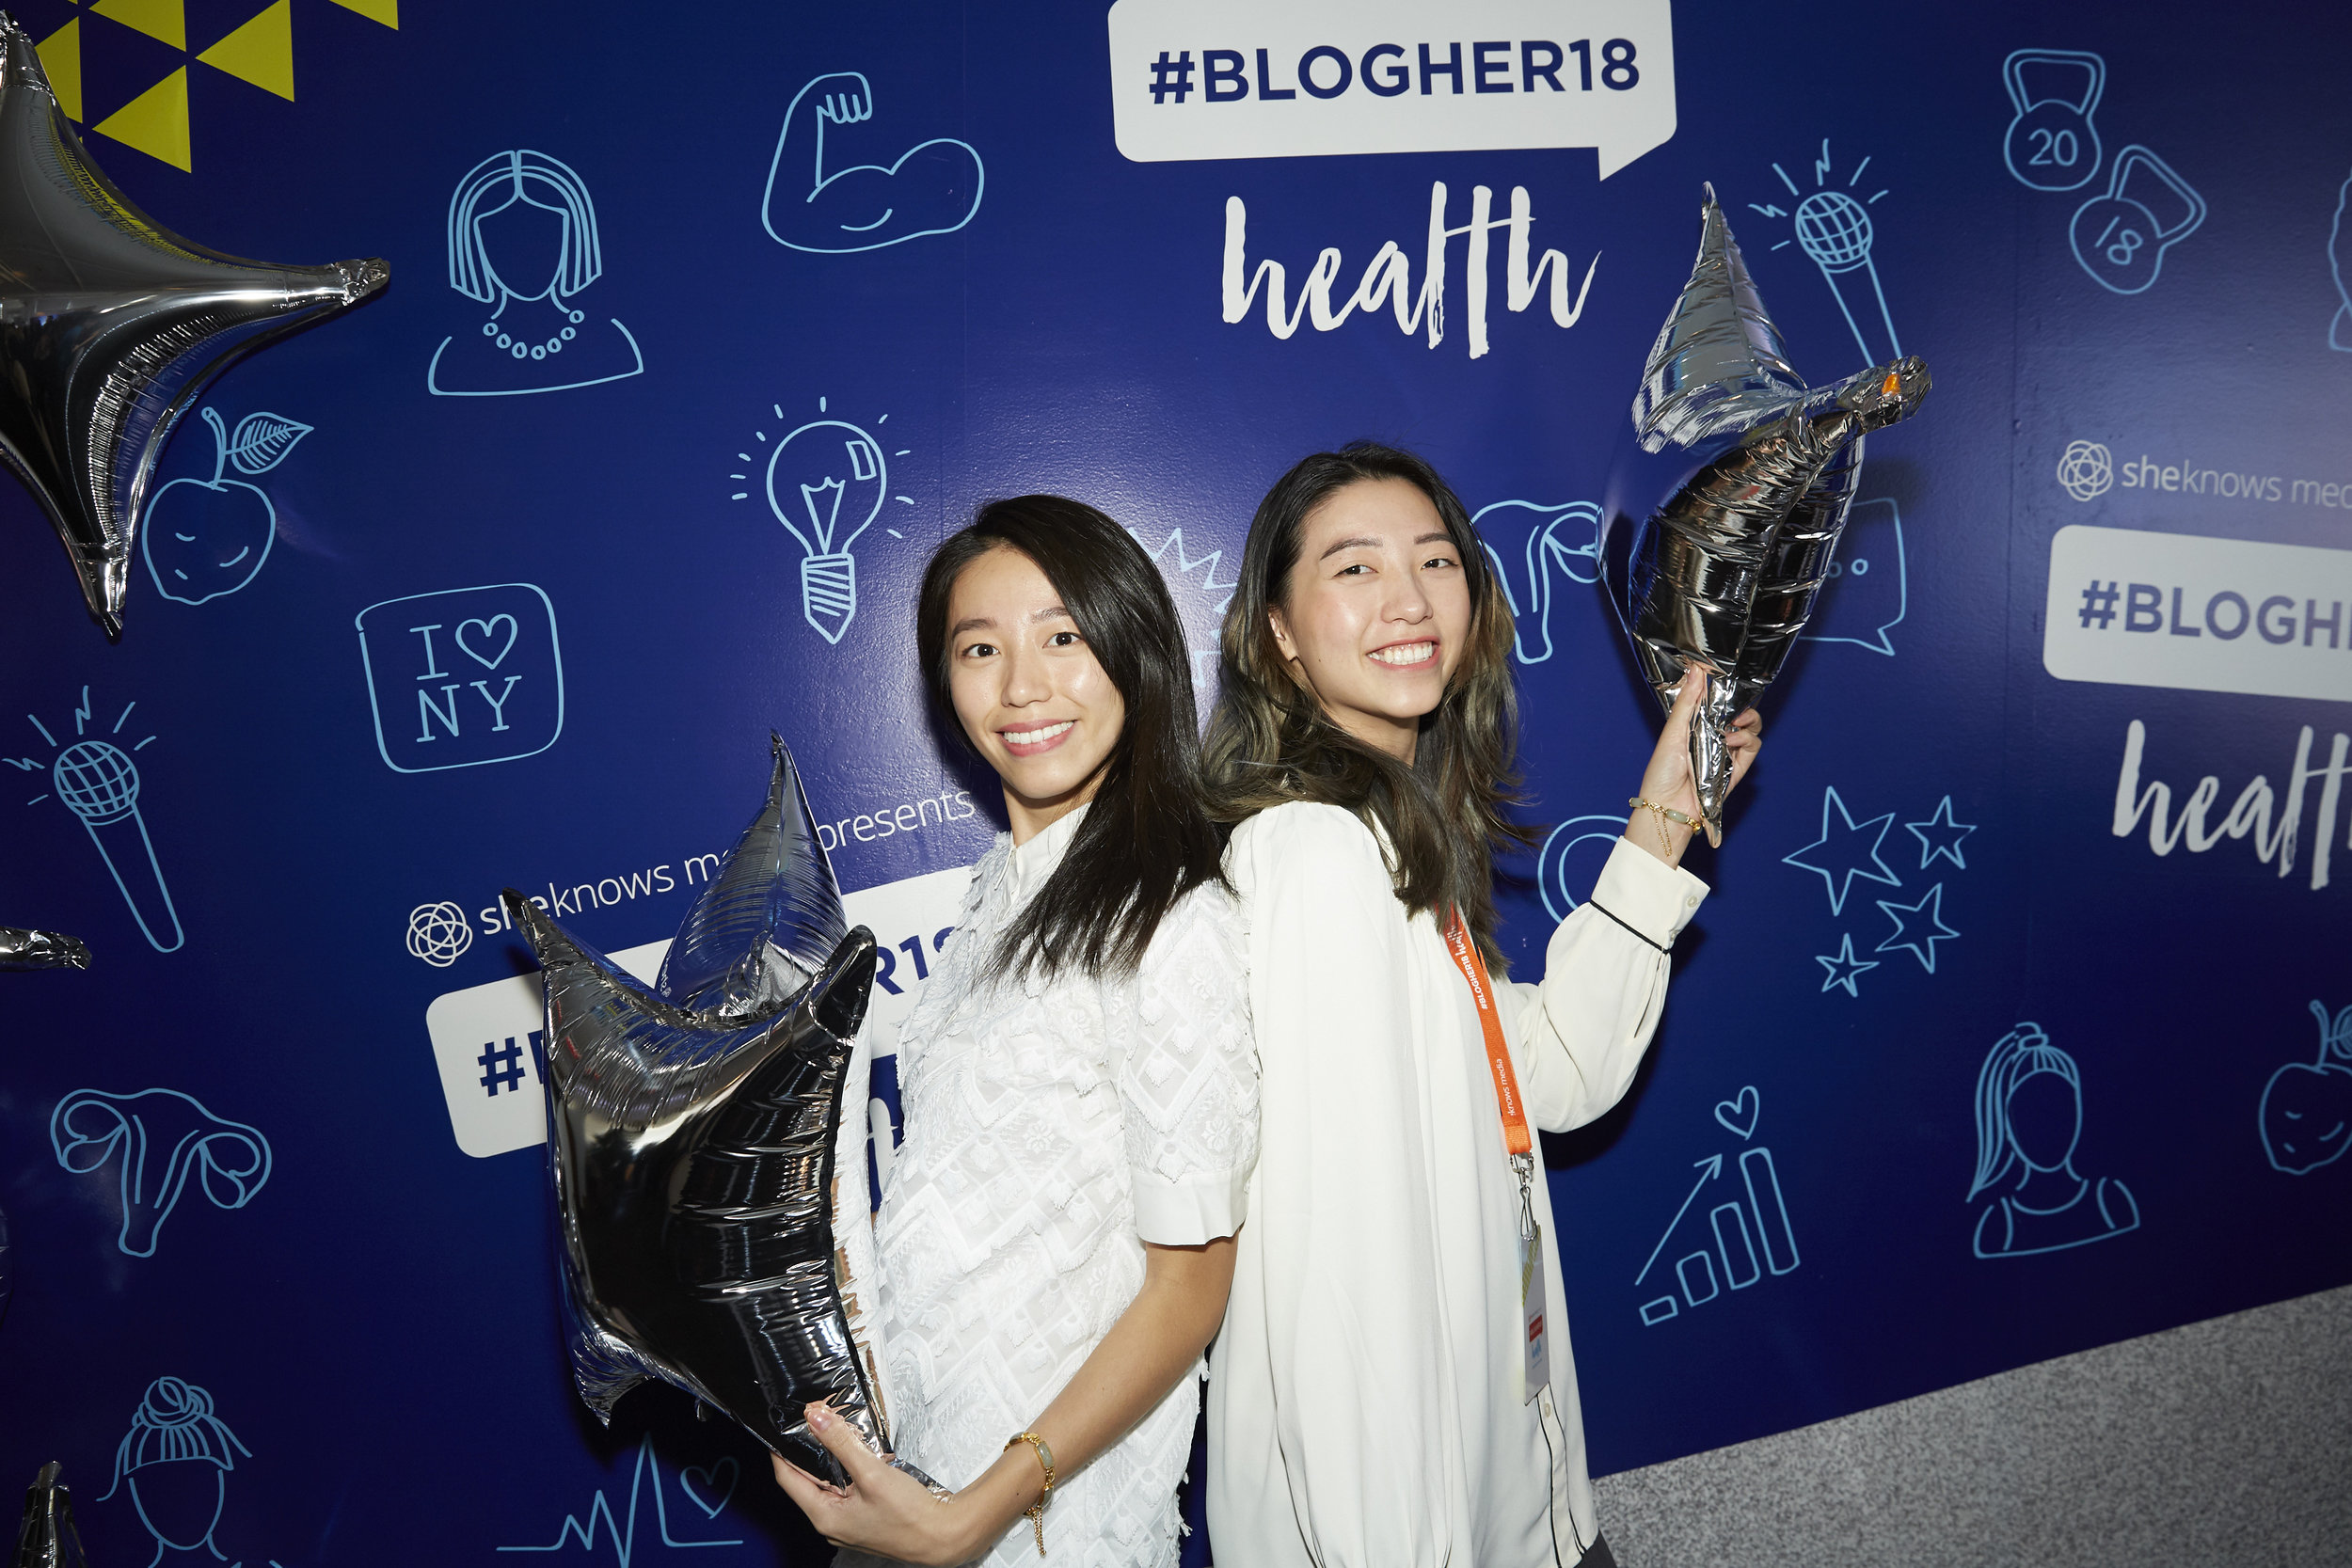 Thanks for Sharing - On the heels of #BlogHer18 Health, we sent a survey to attendees to share their experiences, so we can learn what we did well, and what we can do better. Did you know 84% of respondents would recommend BlogHer events to a friend? Keep reading for more insights!